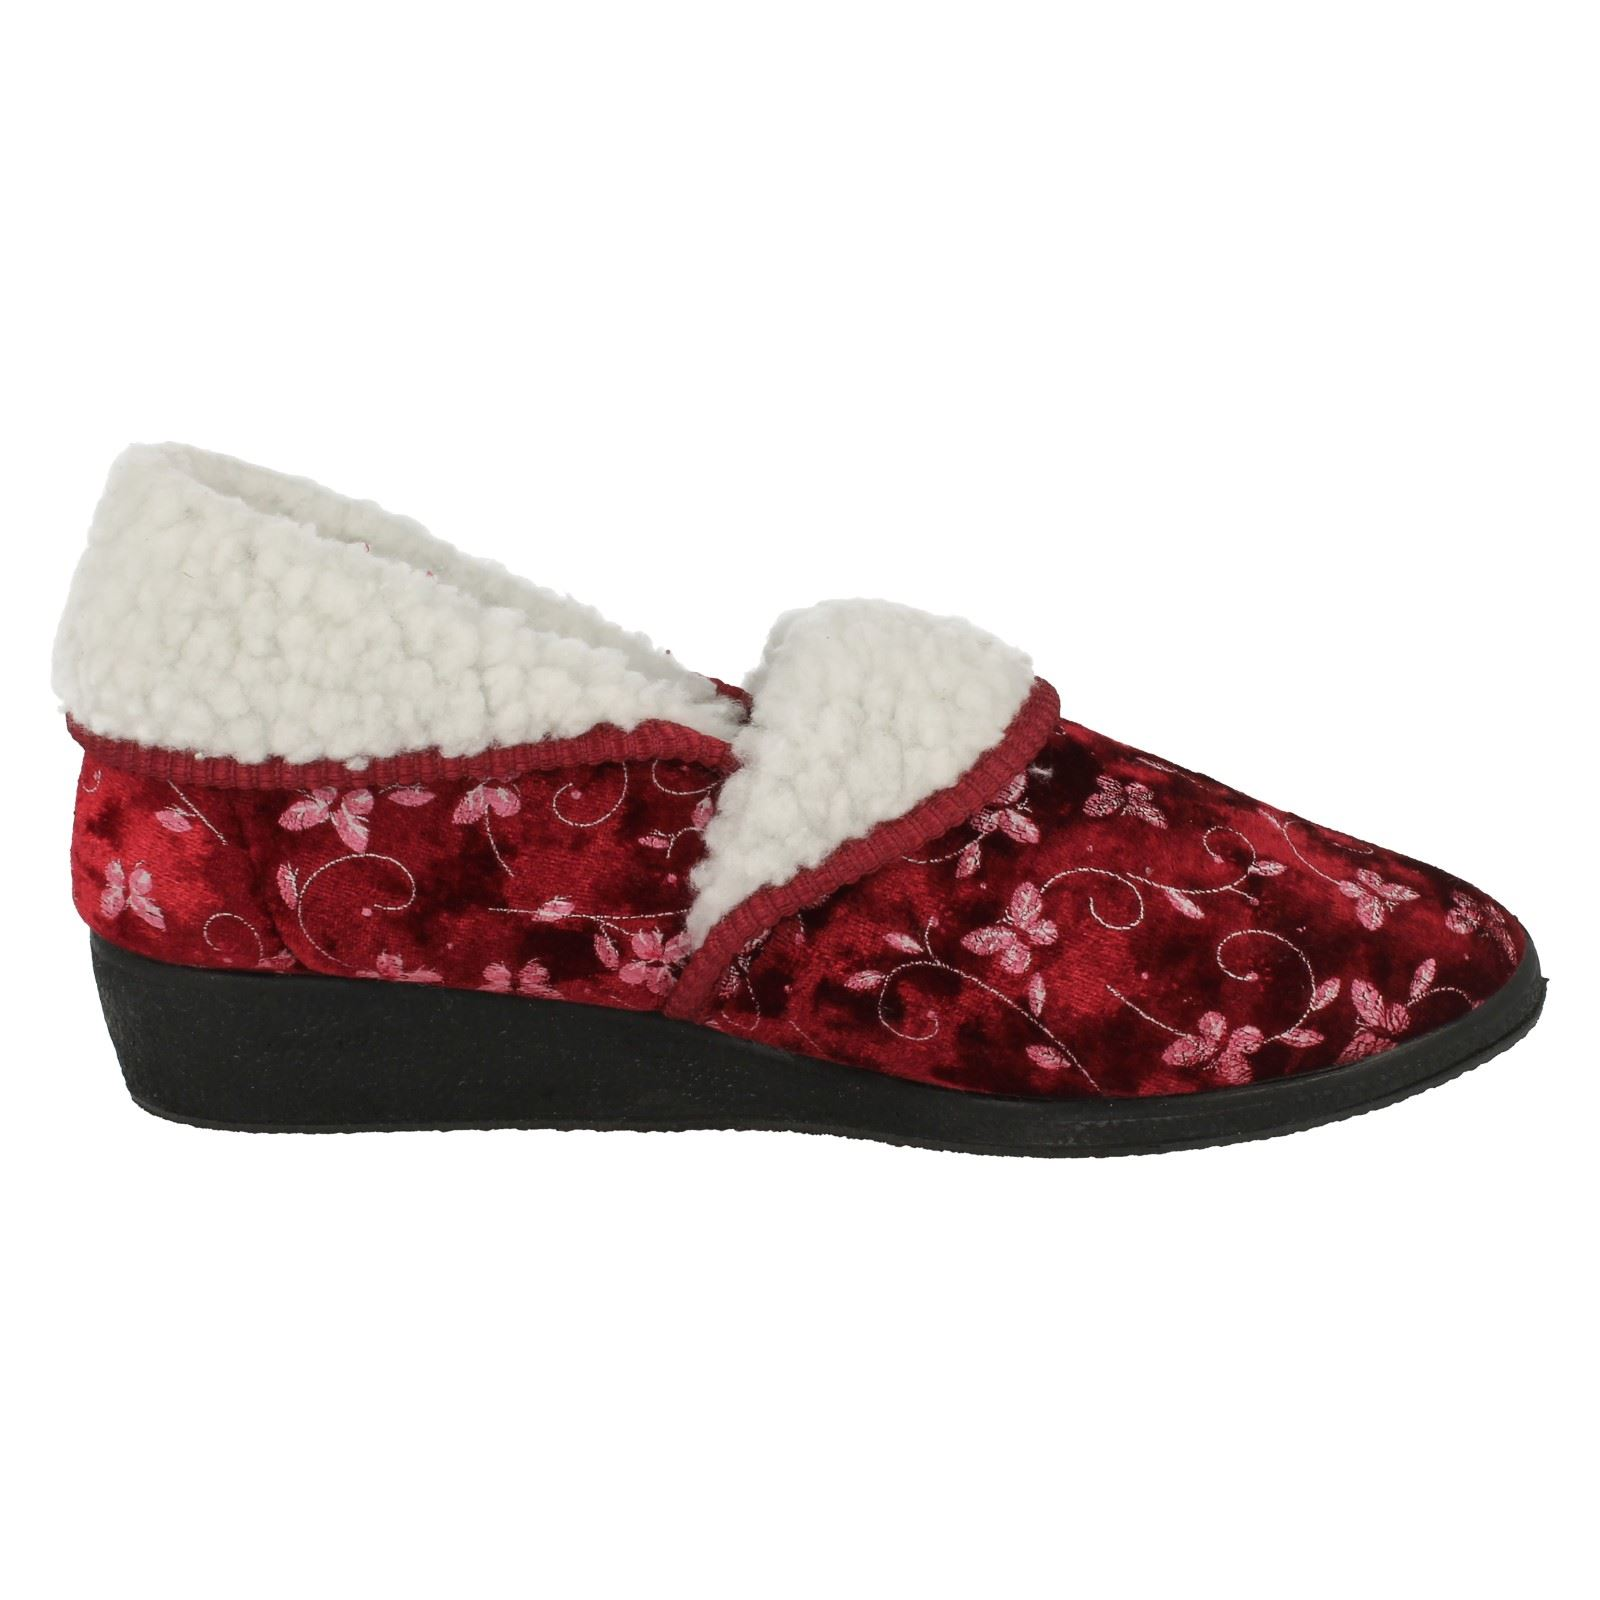 Ladies-Four-Seasons-House-Slippers-Edith thumbnail 5